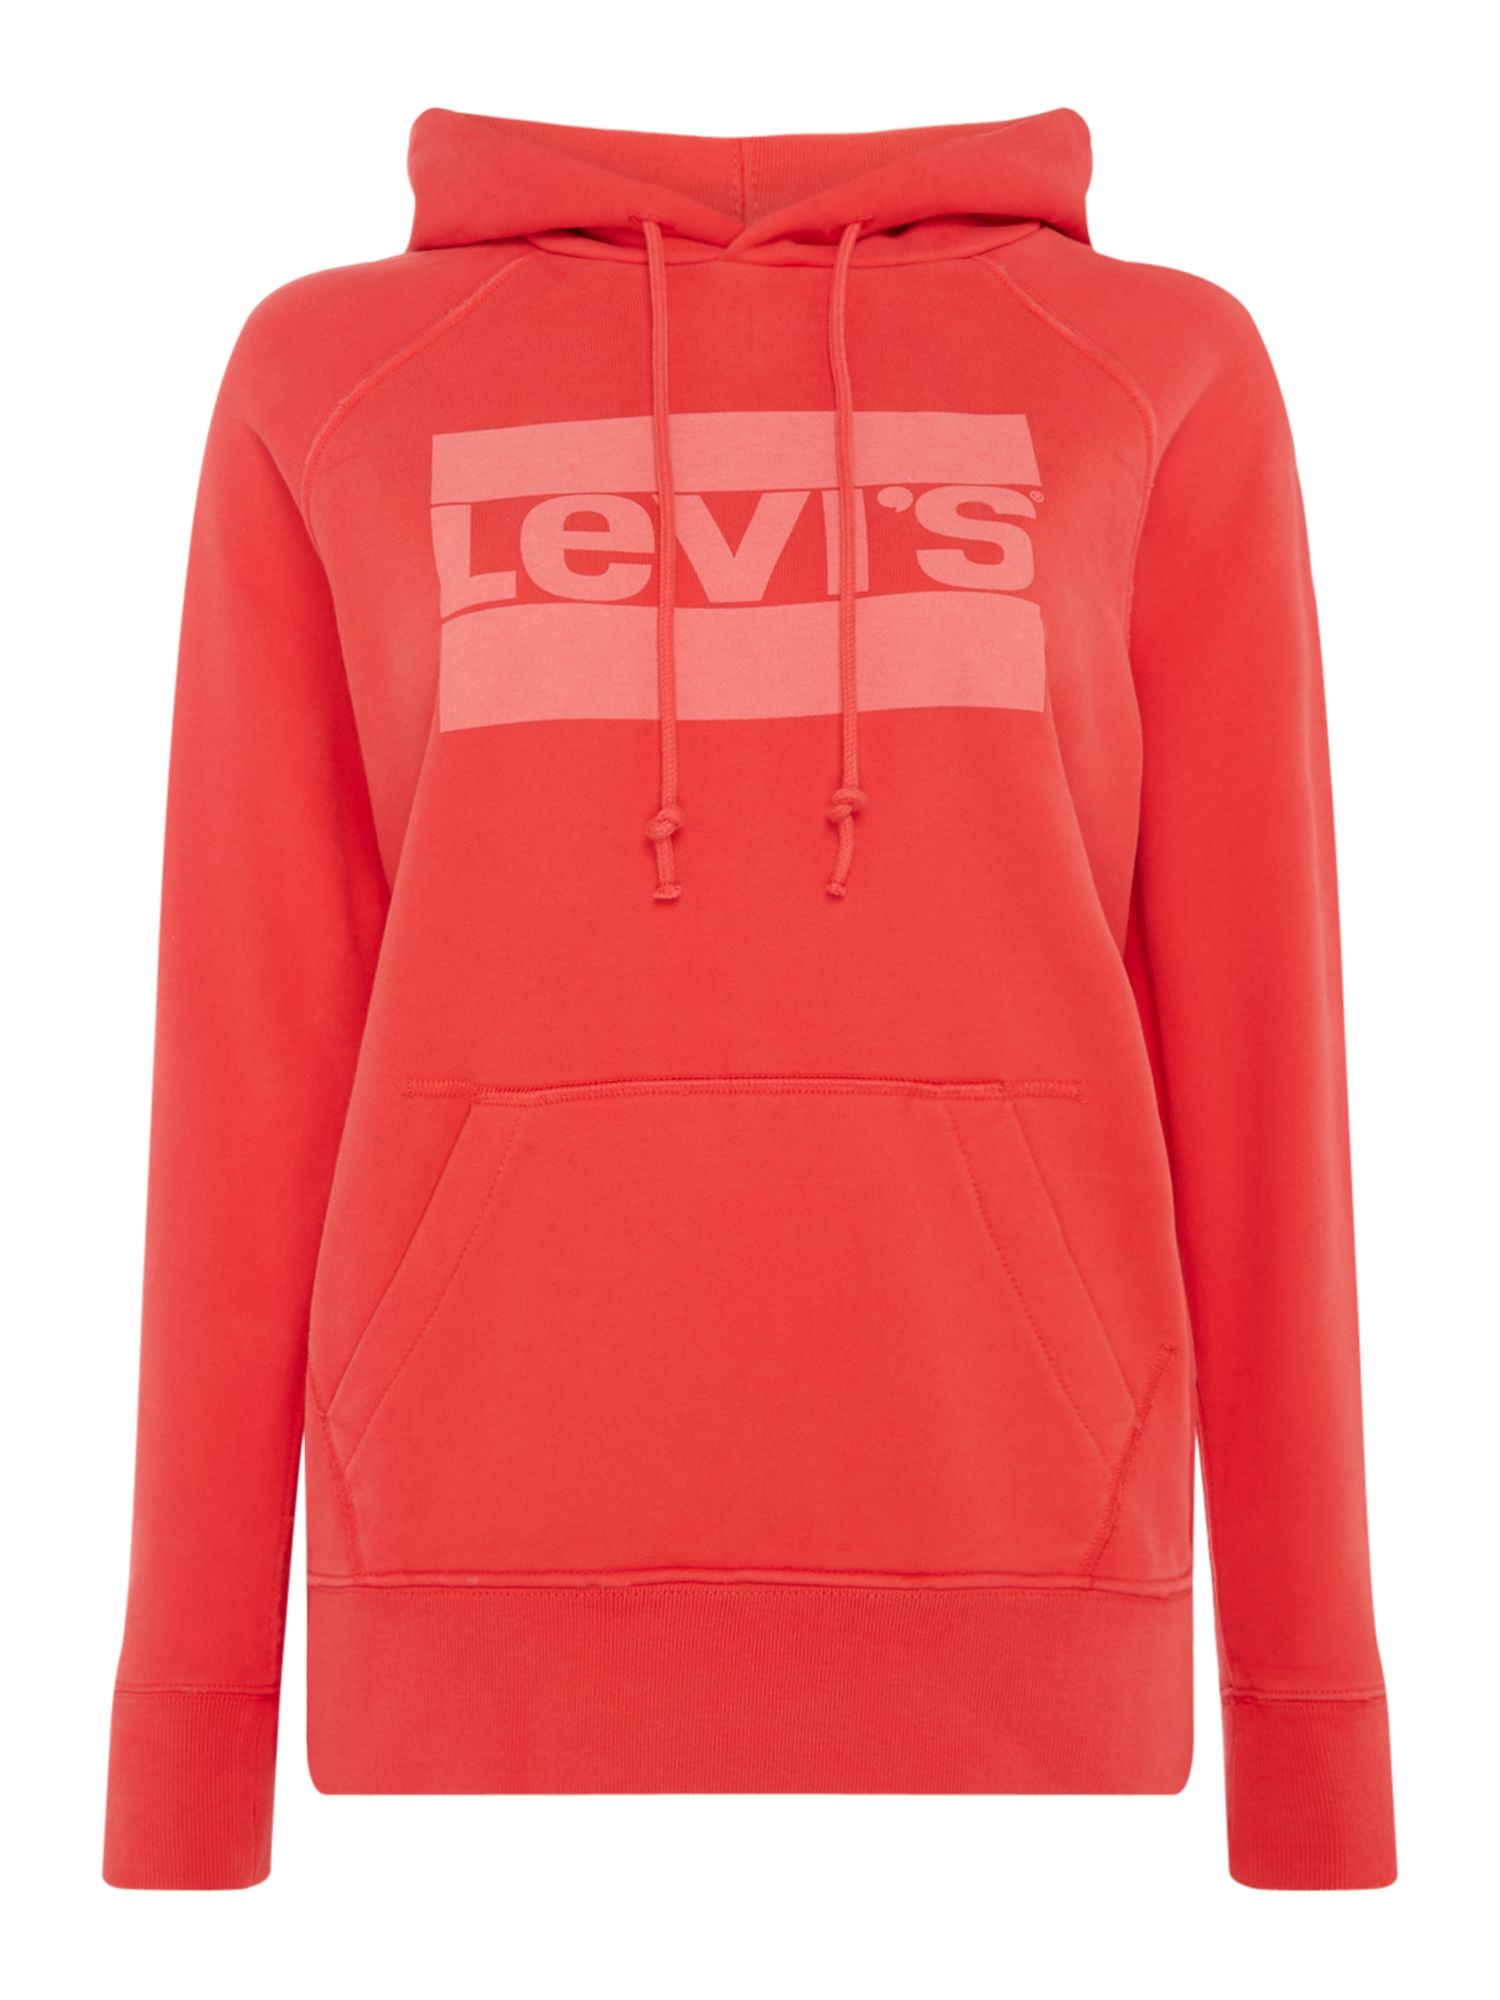 Levi's Hoodie With Graphic Sport Logo, Red